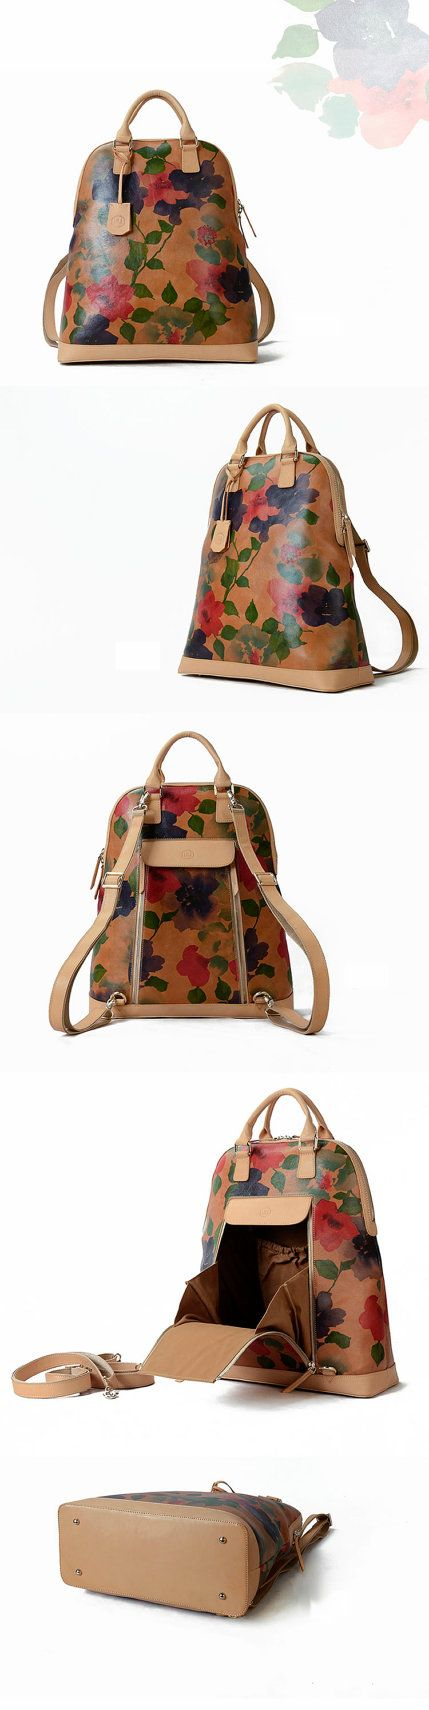 Floral Print Leather Backpack-Large Cool Women por KiliDesign